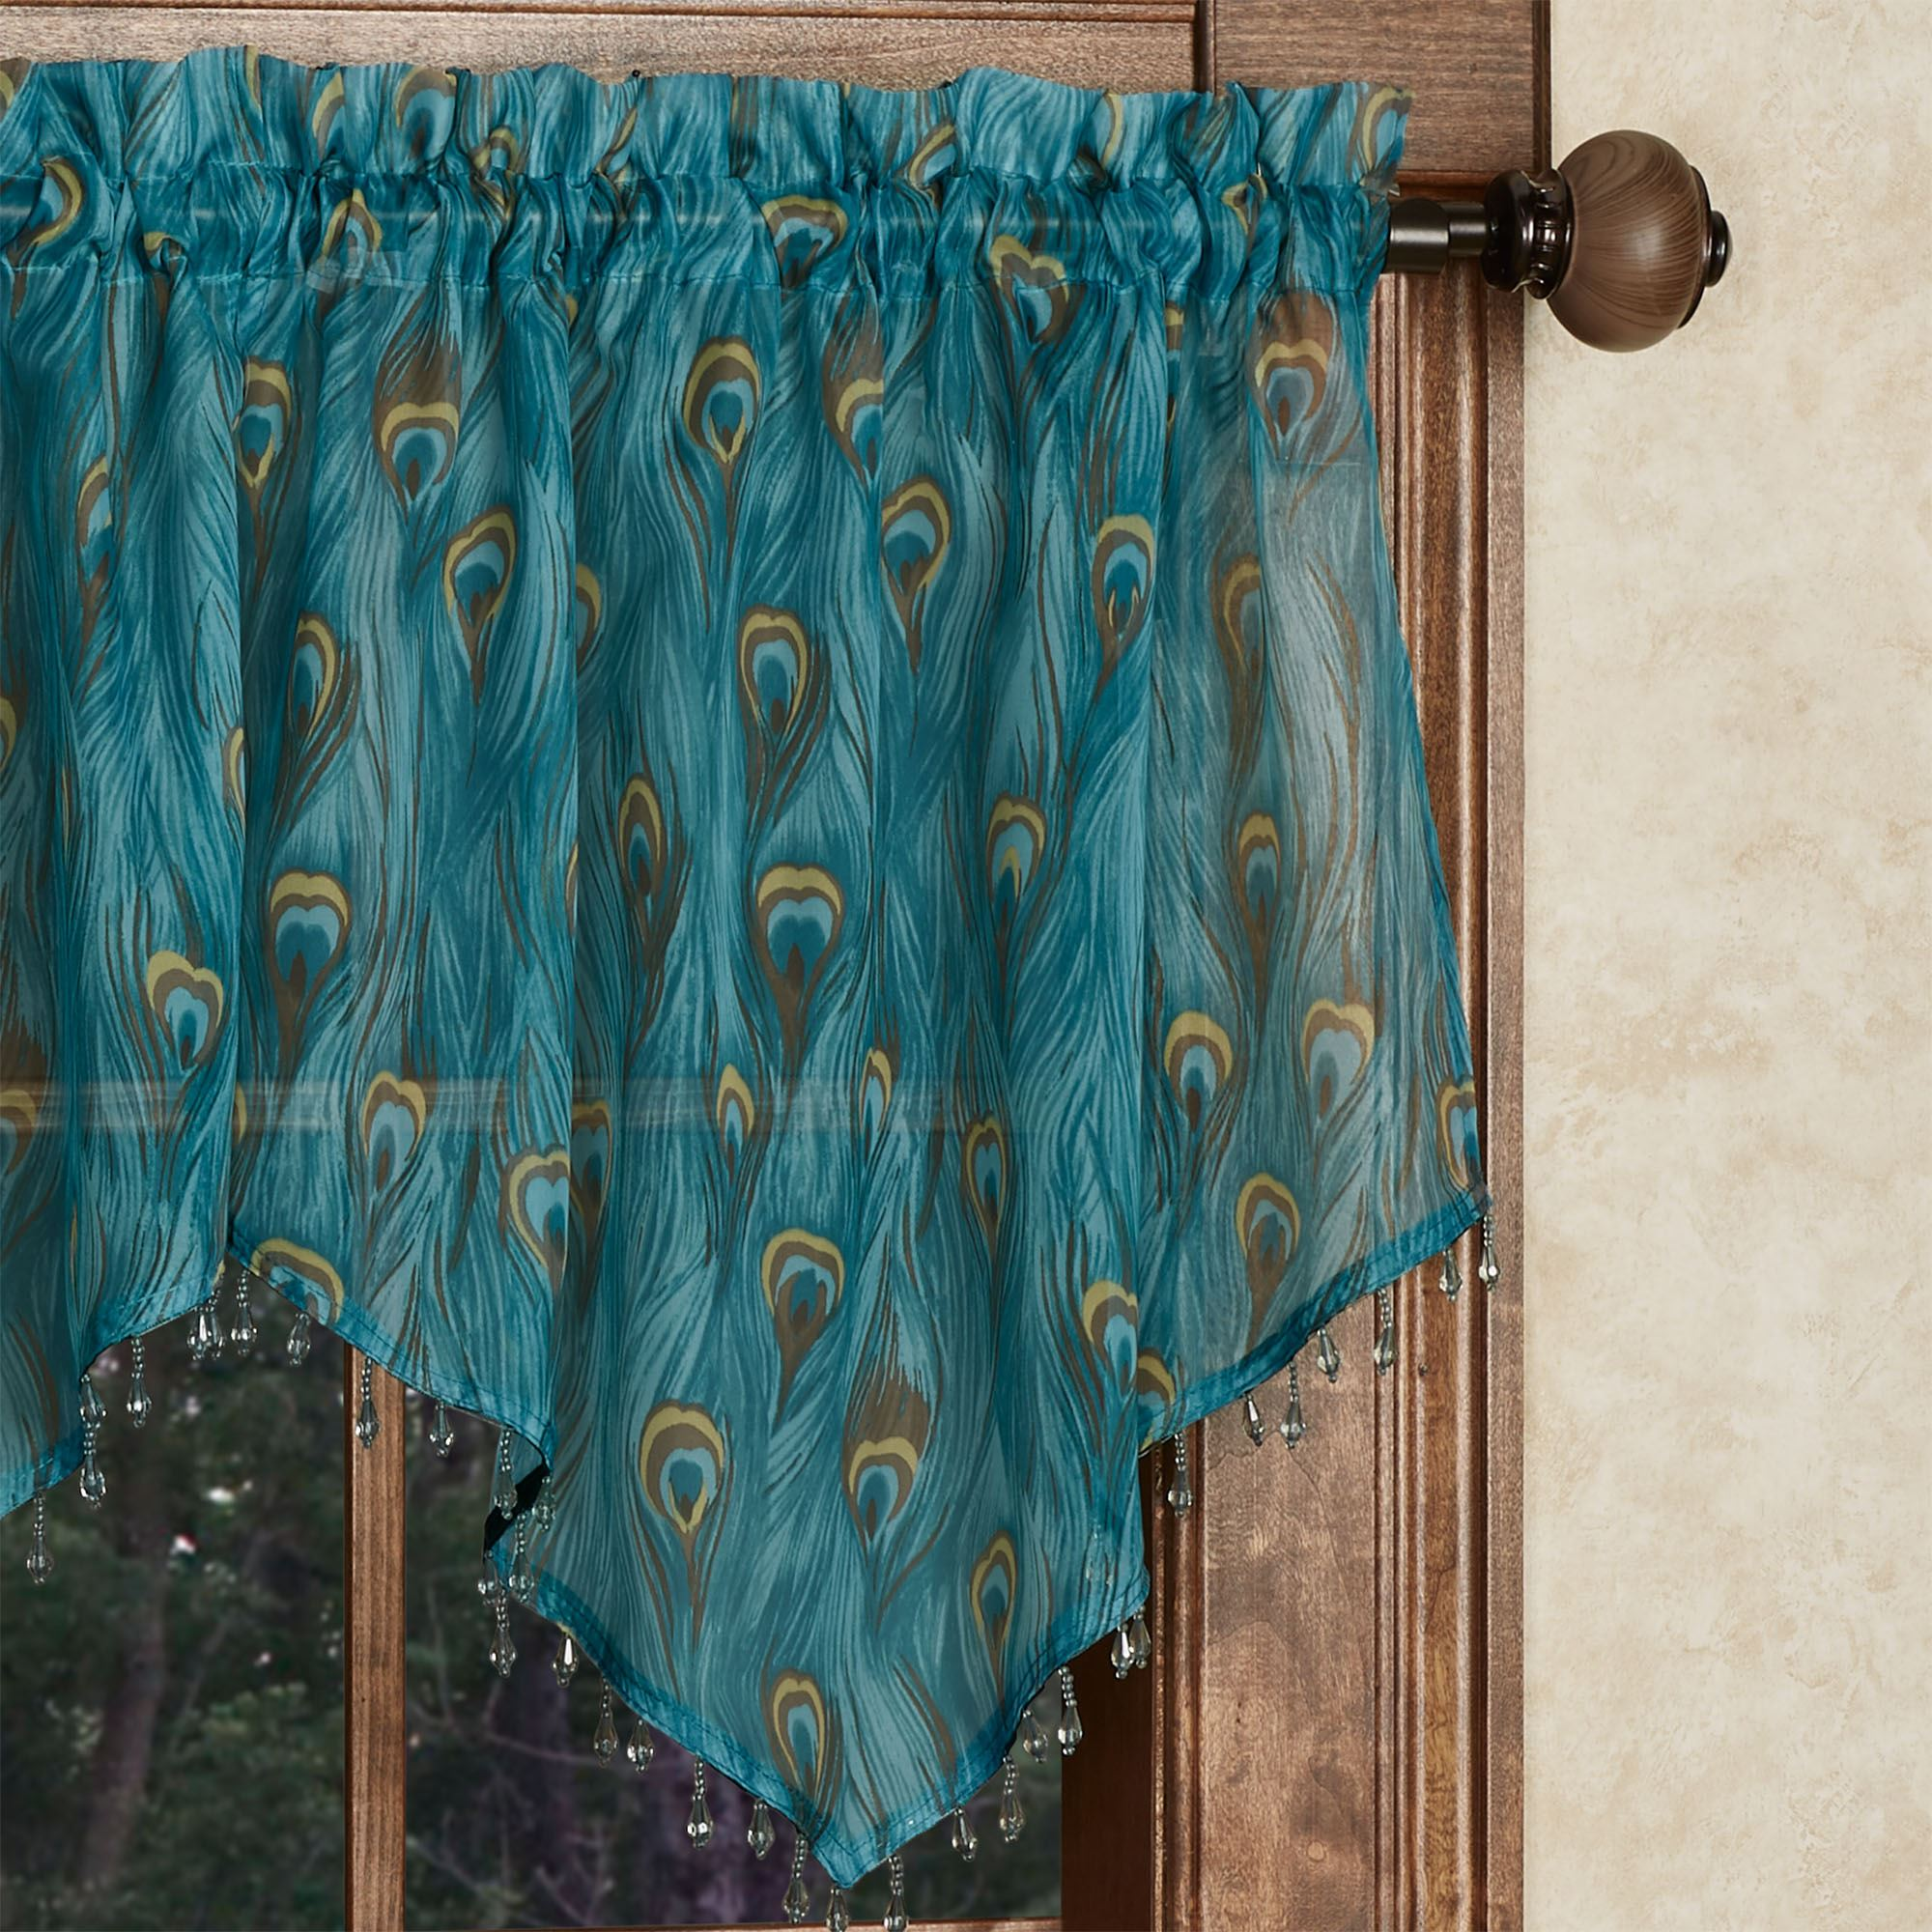 King Peacock Feather Print Sheer Ascot Valance And Window